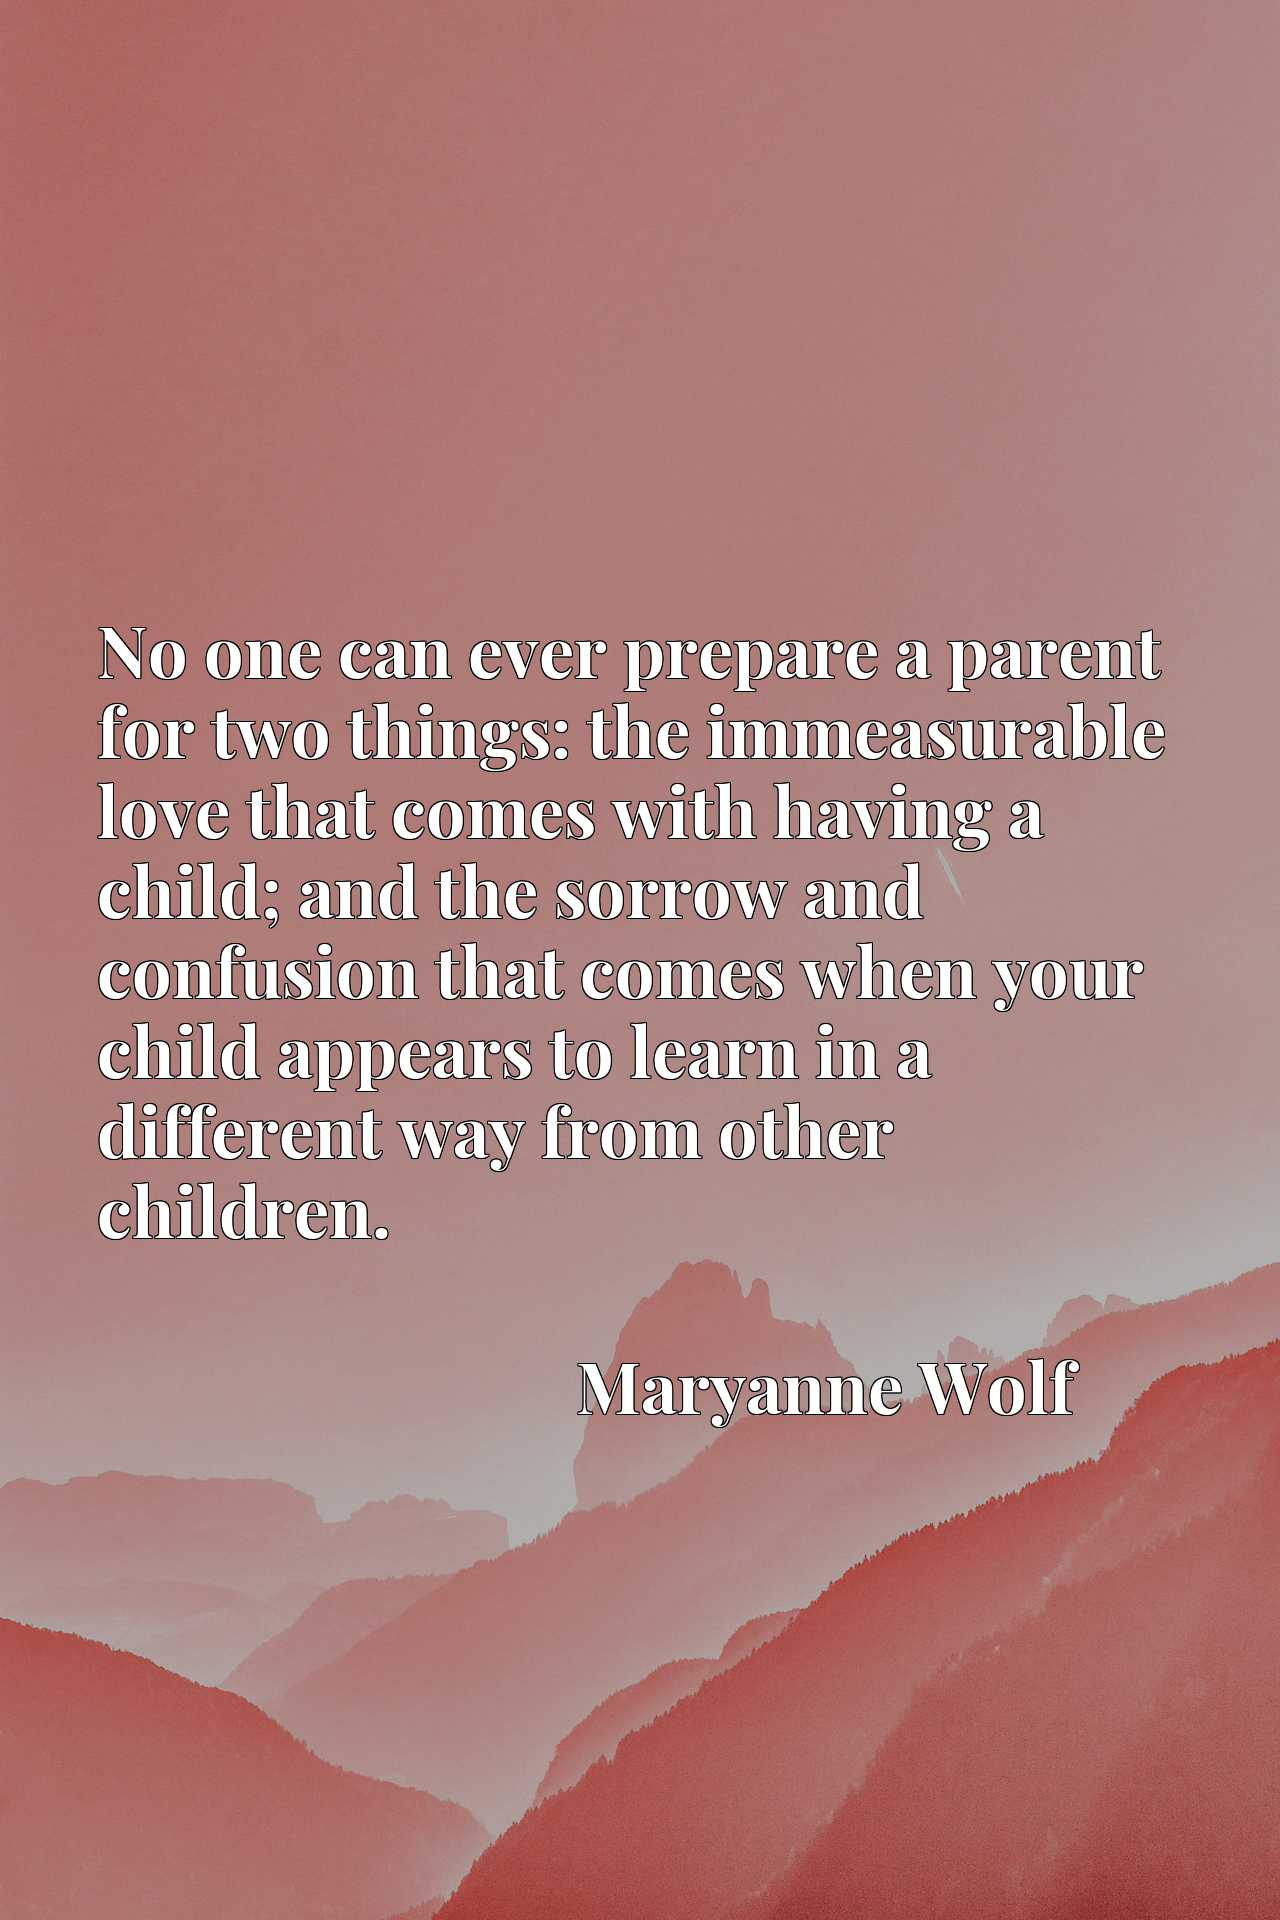 Quote Picture :No one can ever prepare a parent for two things: the immeasurable love that comes with having a child; and the sorrow and confusion that comes when your child appears to learn in a different way from other children.